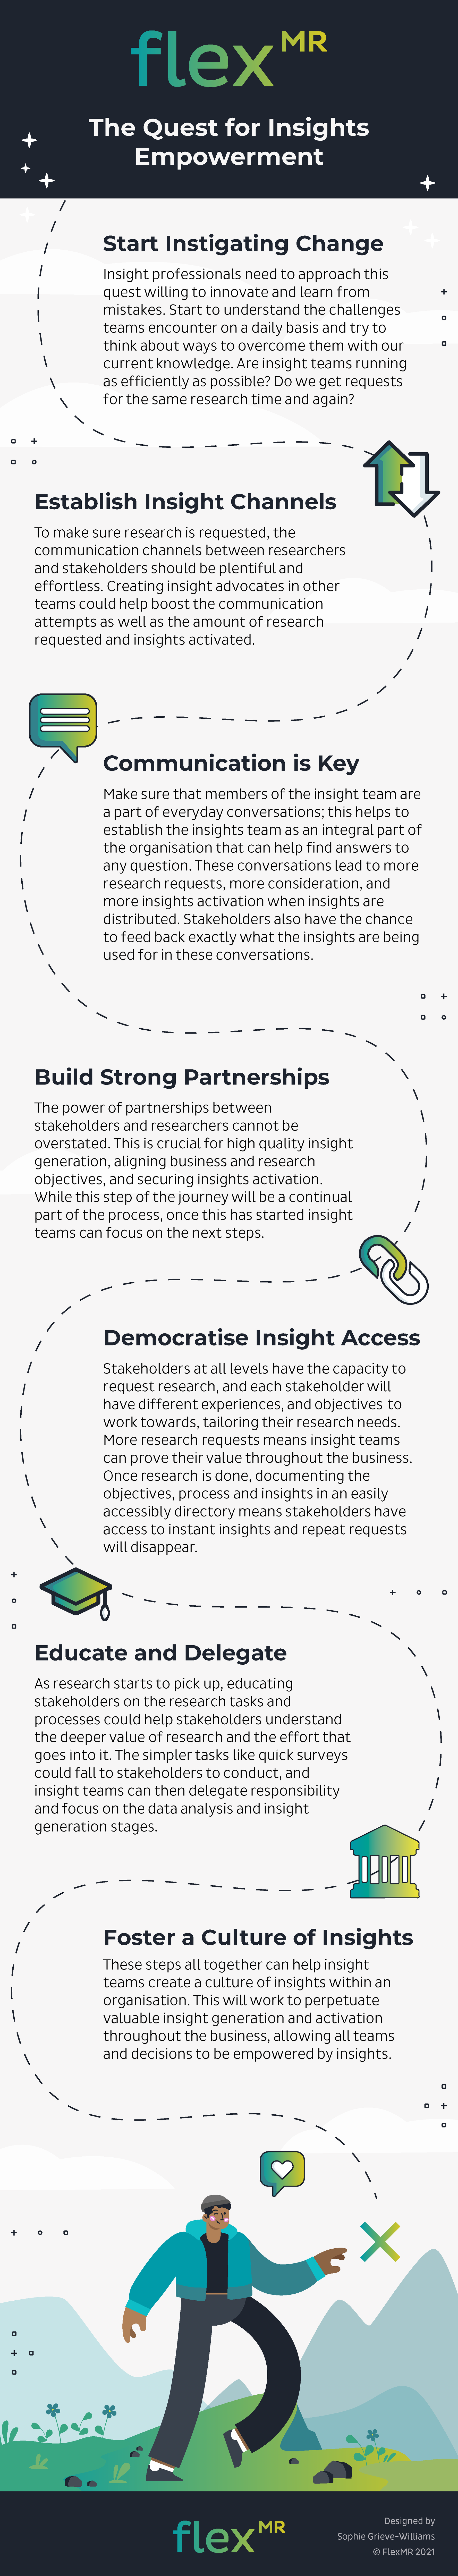 INFOGRAPHIC_The Quest for Insights Empowerment_Page_1